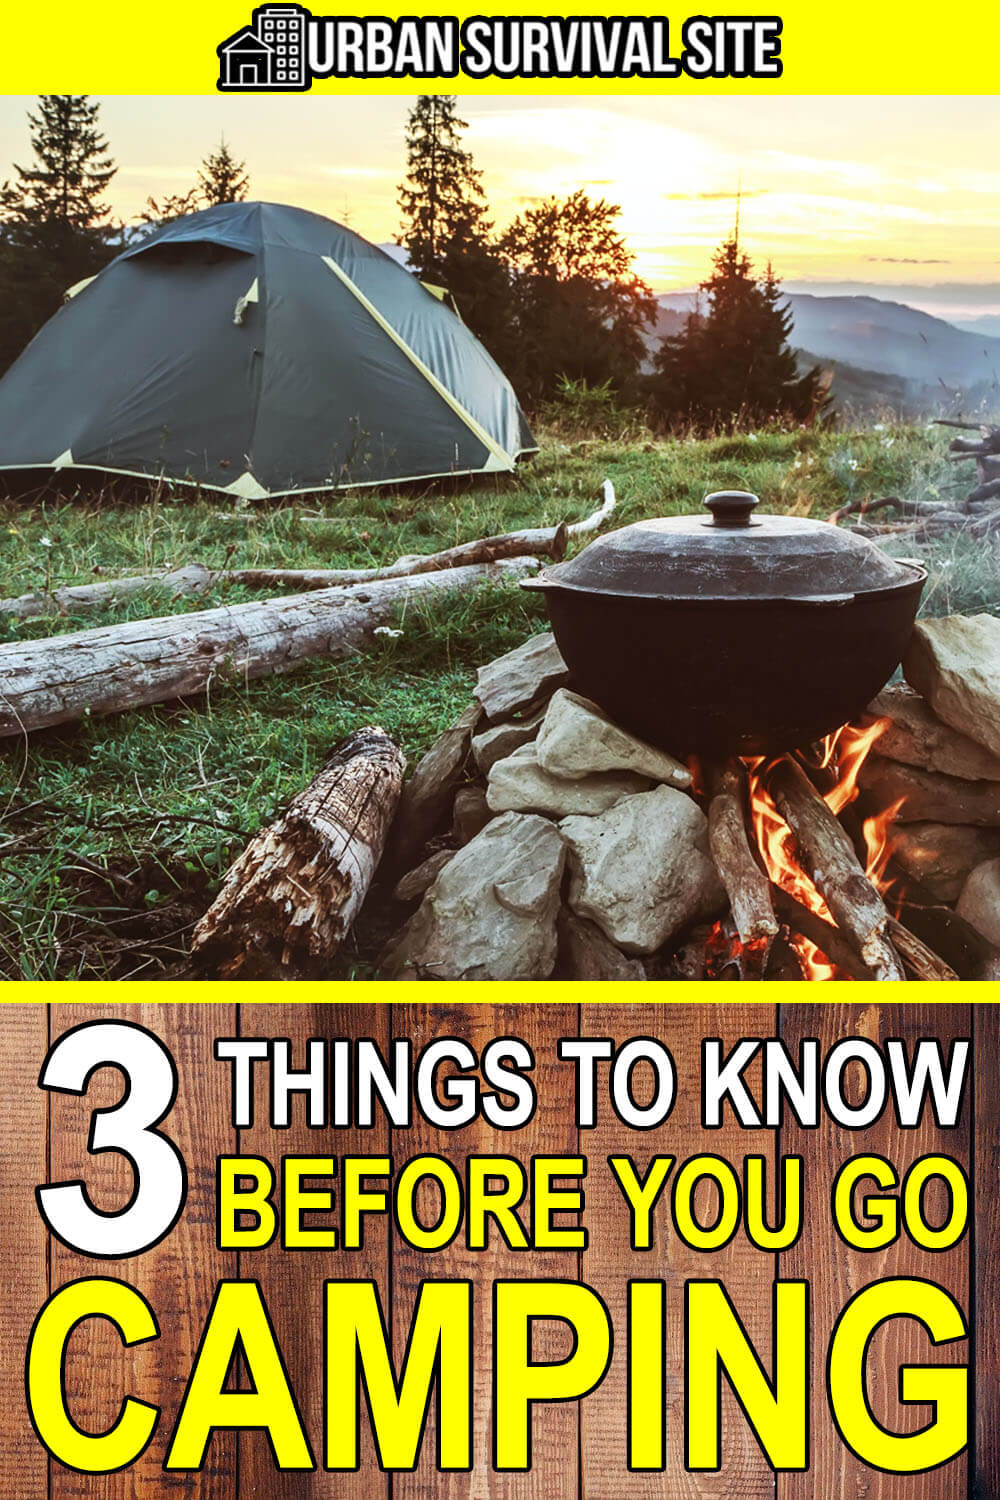 3 Things To Know BEFORE You Go Camping